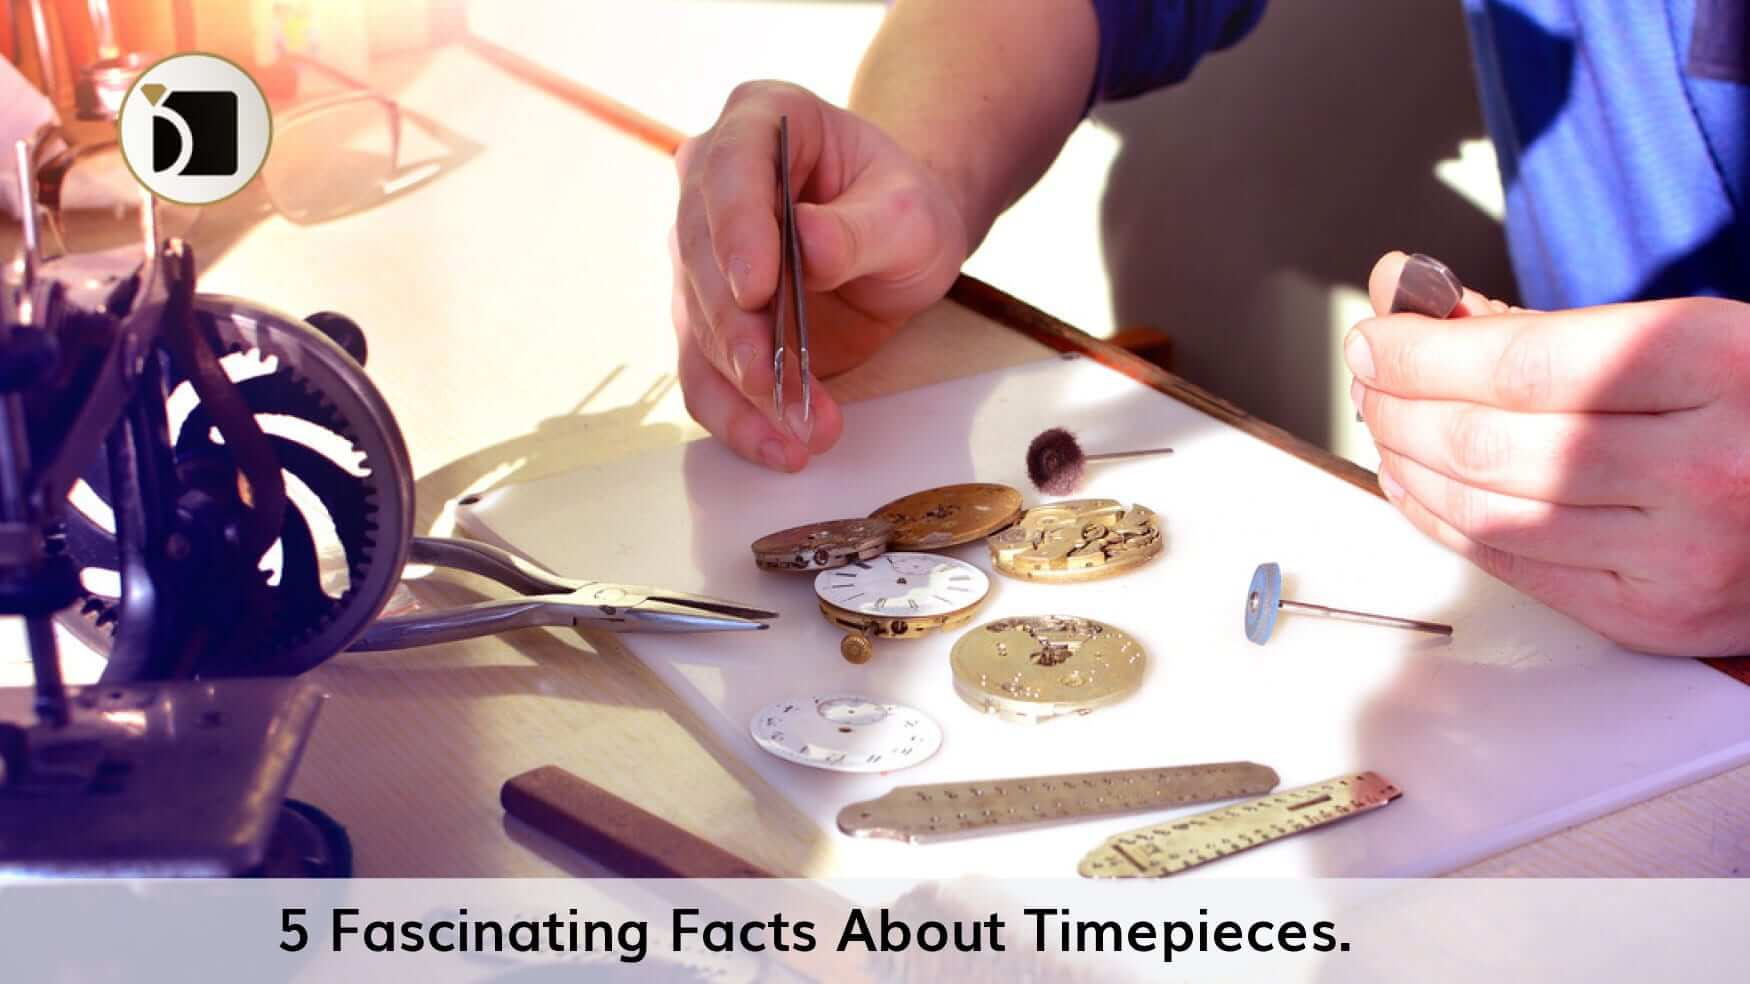 5 Fascinating Facts About Timepieces